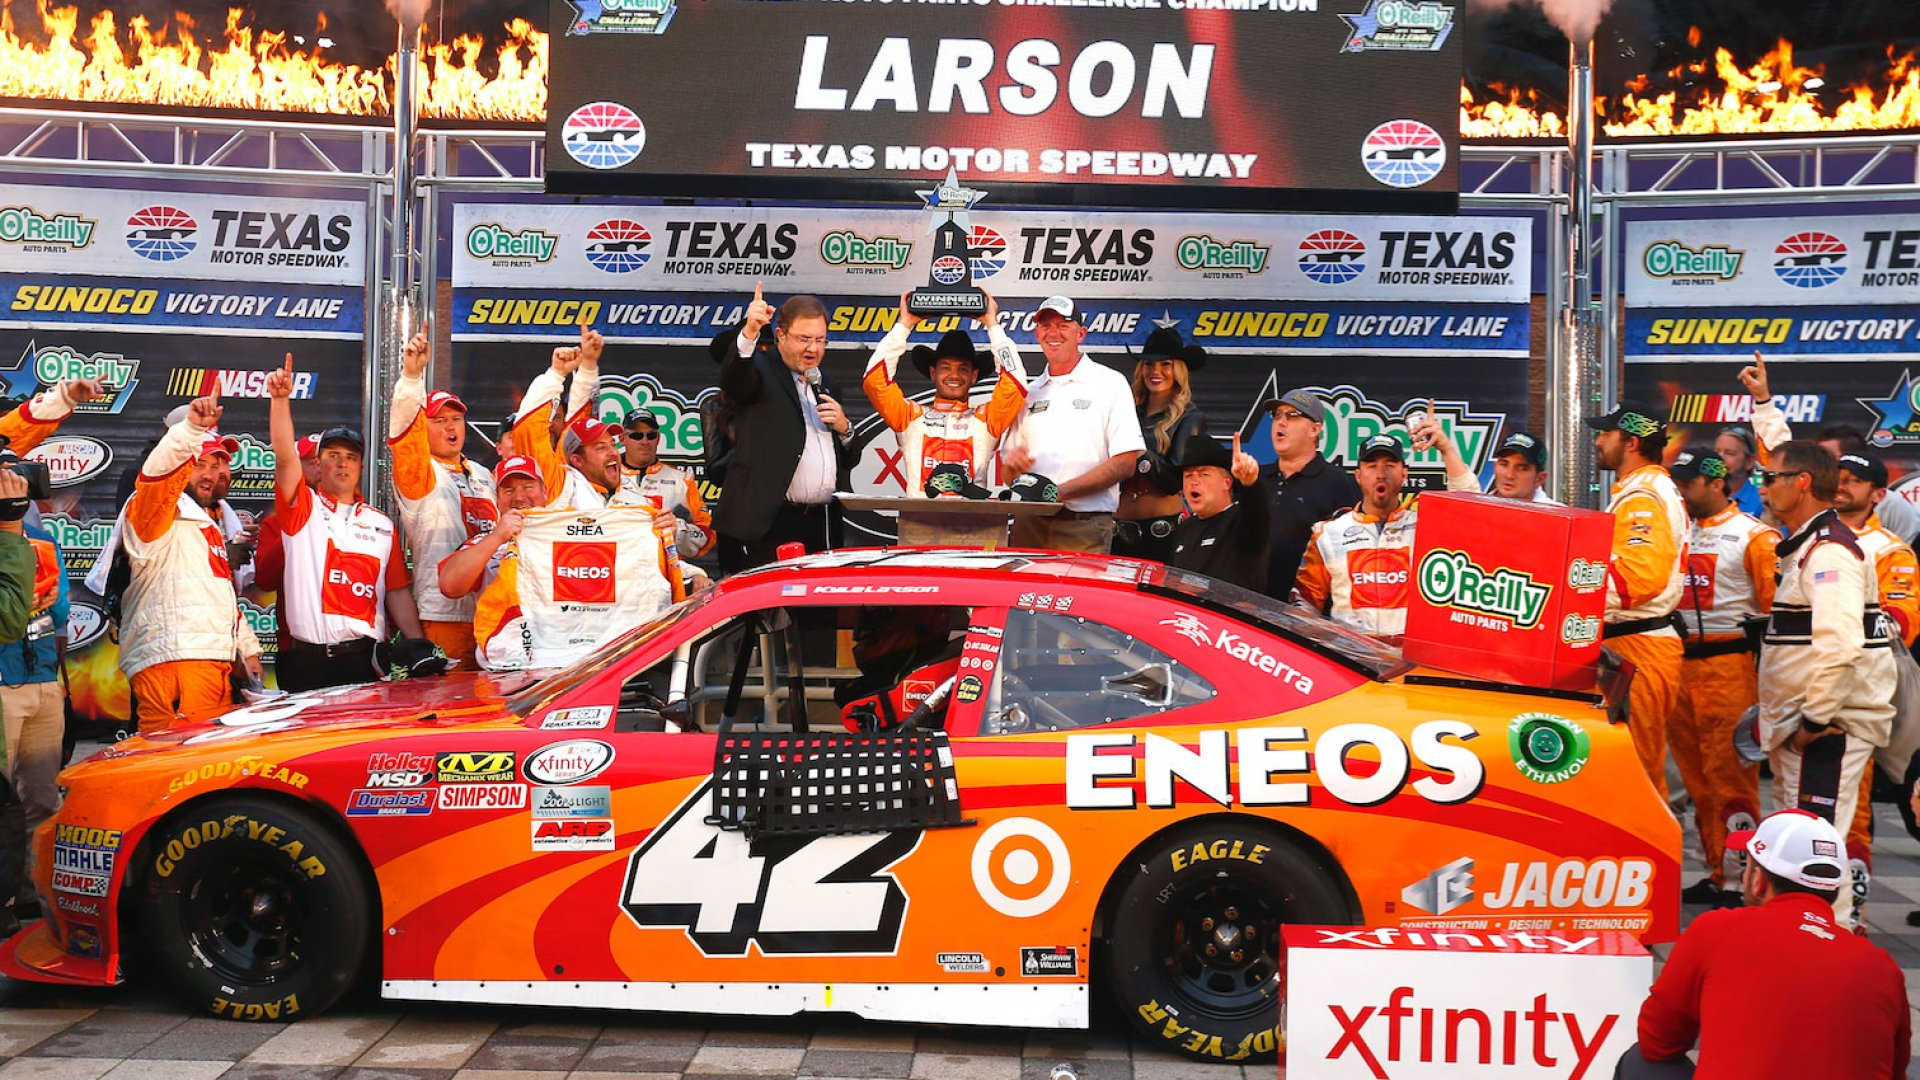 Kyle Larson in victory lane at Texas Motor Speedway